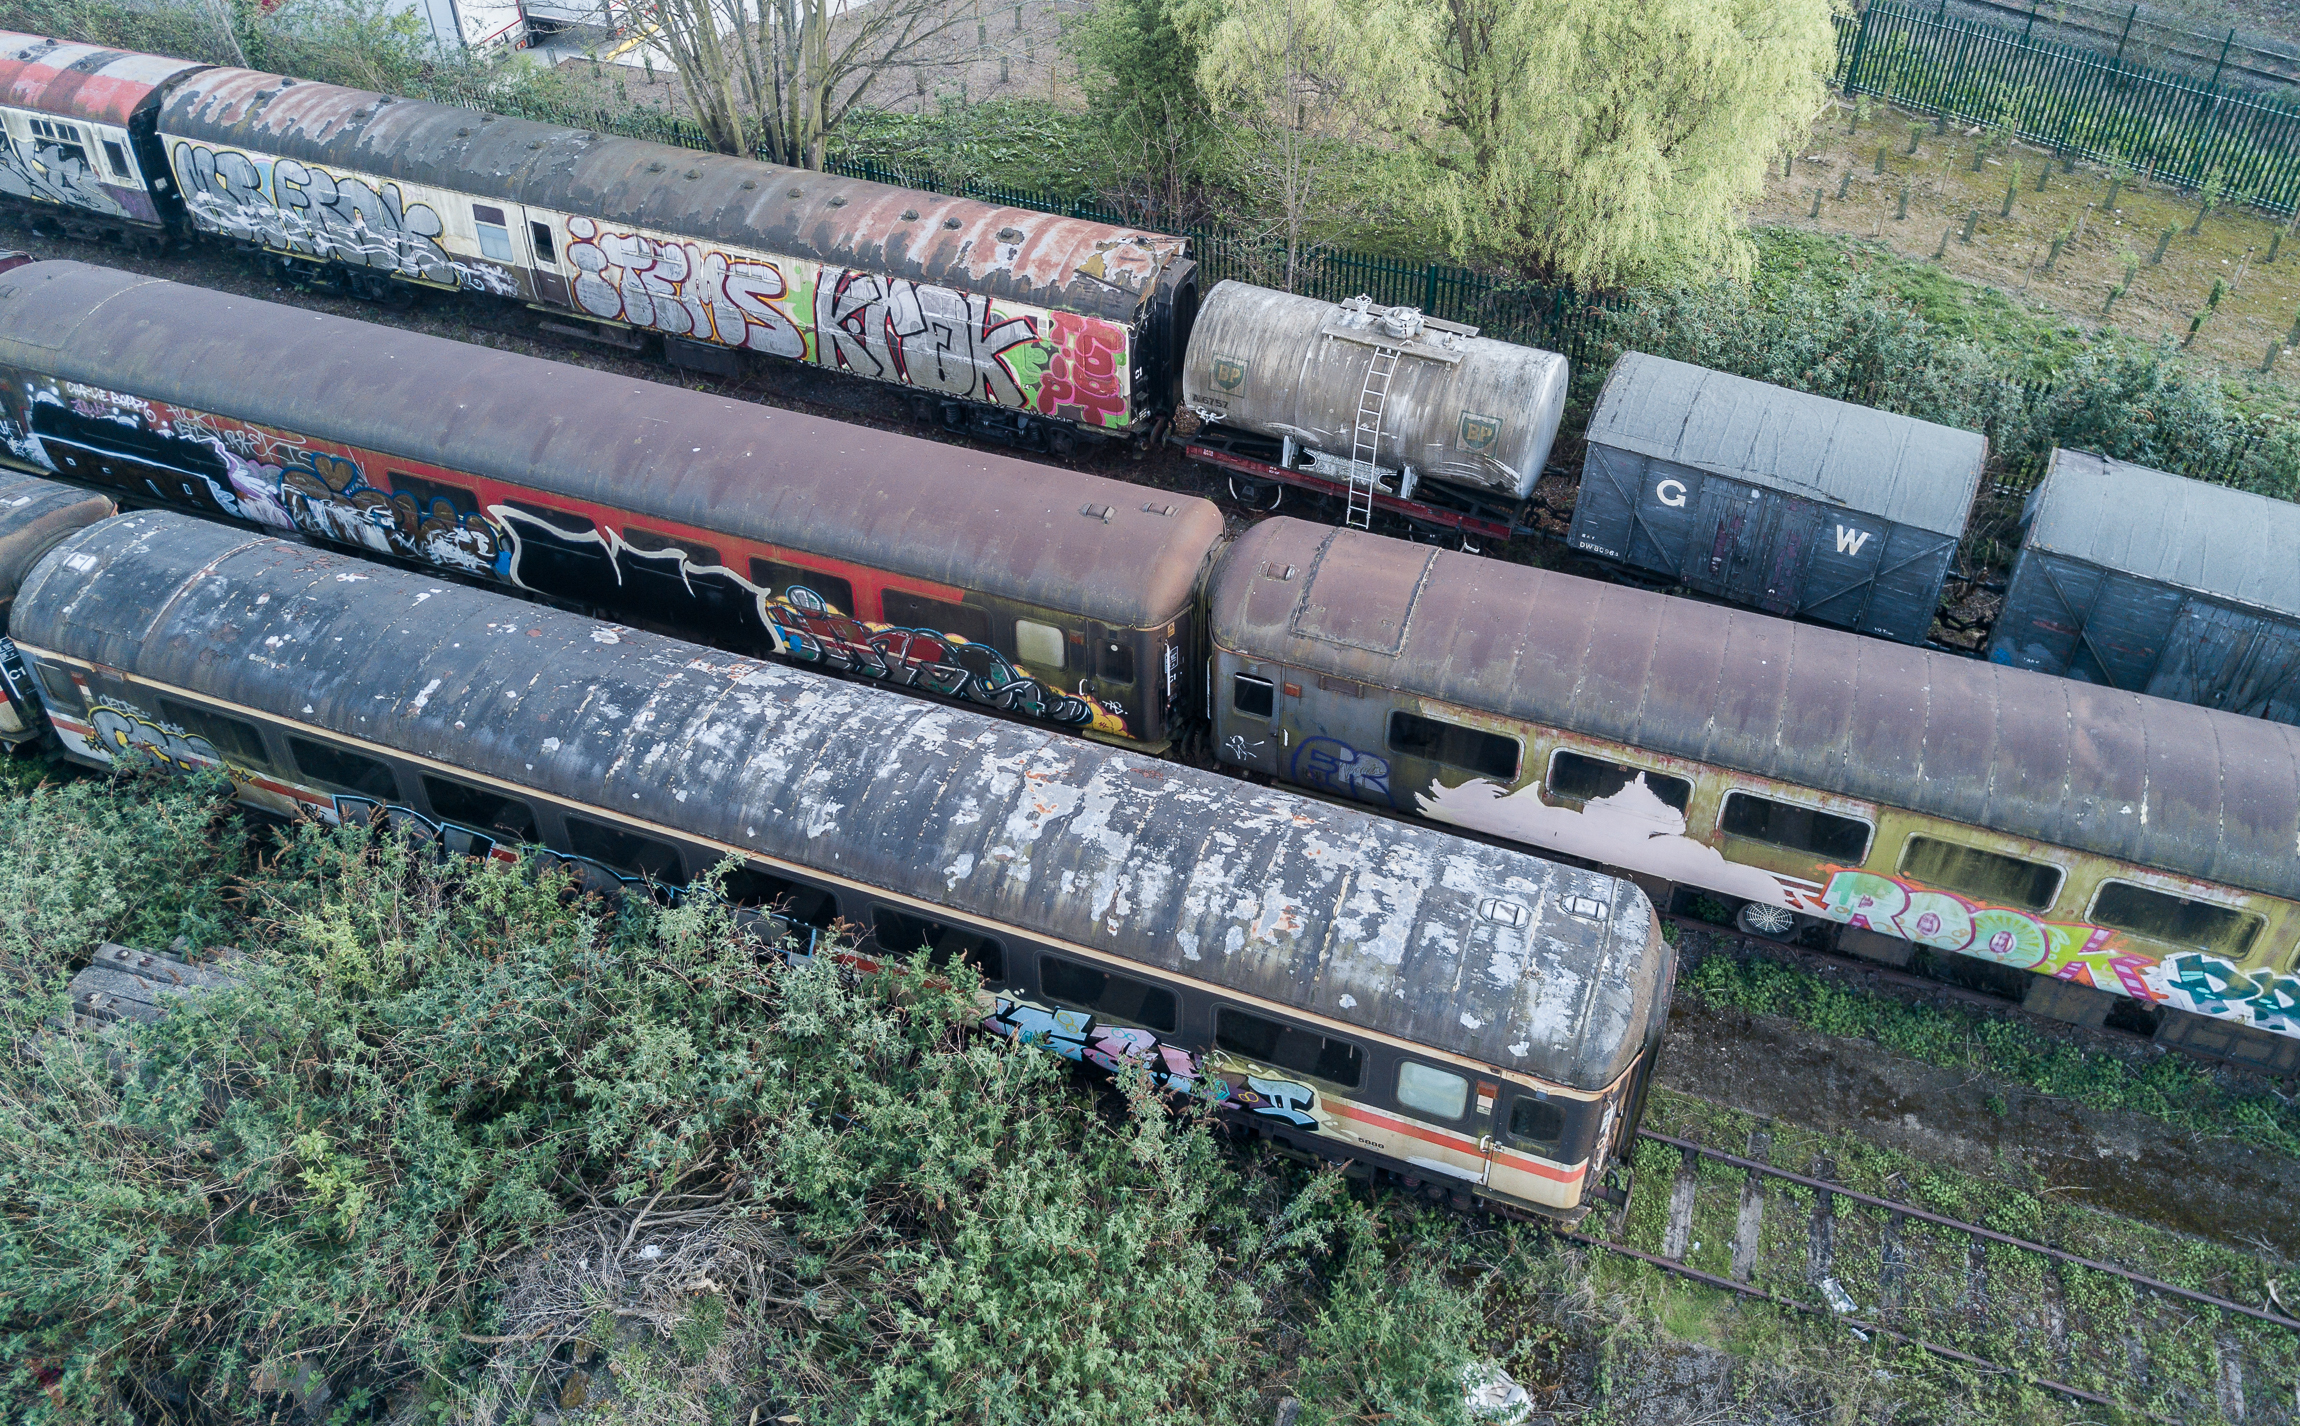 Unloved Trains - Rotting, smelly carriages, sitting wasted and pretty in a urban dump.